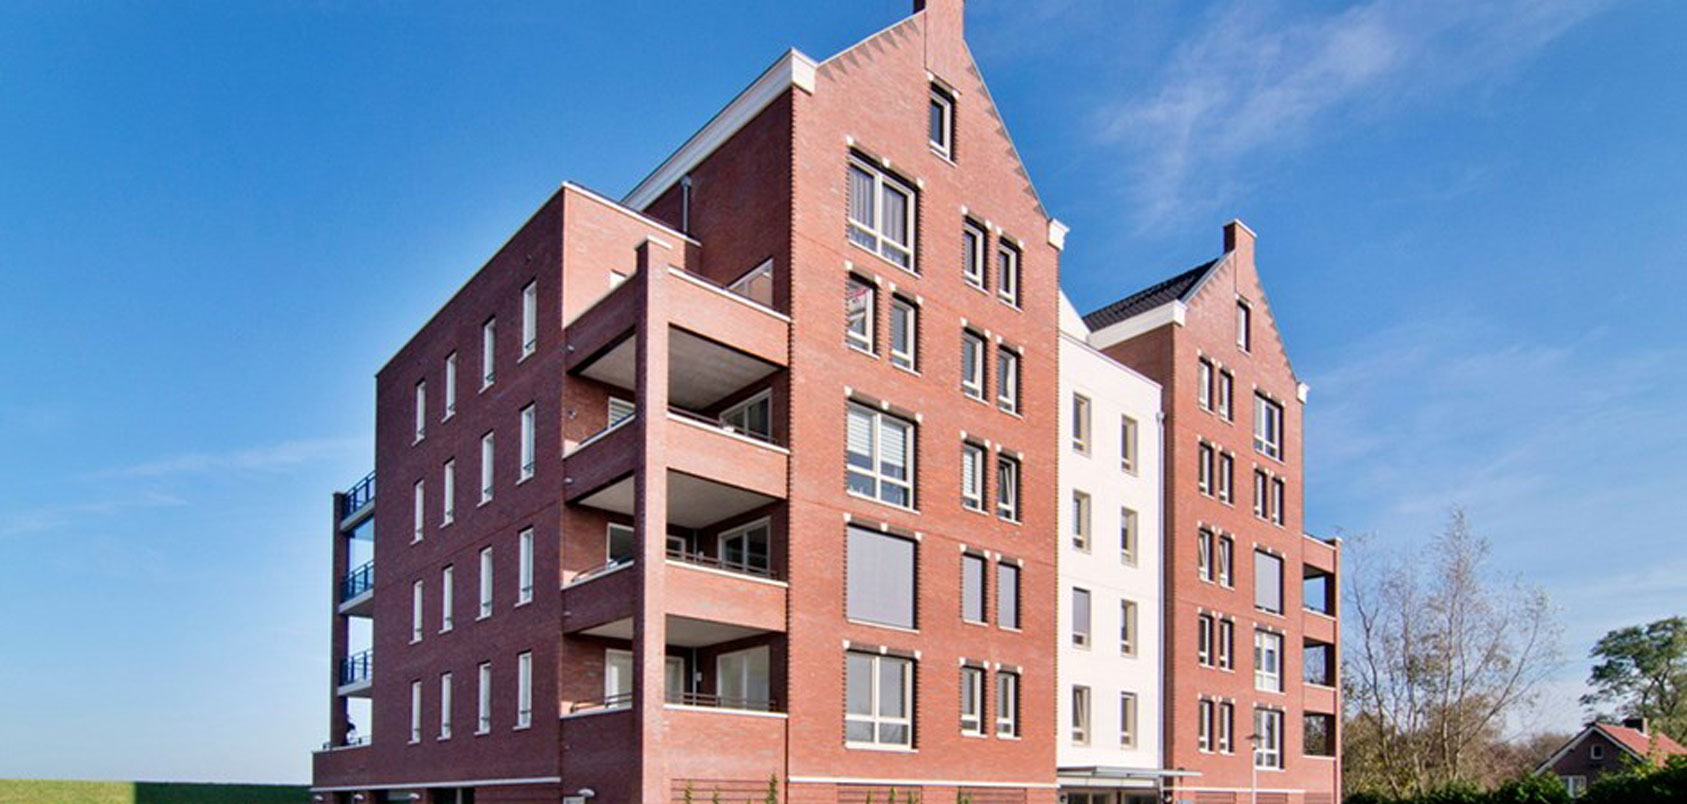 12 Apartments De Horst Druten